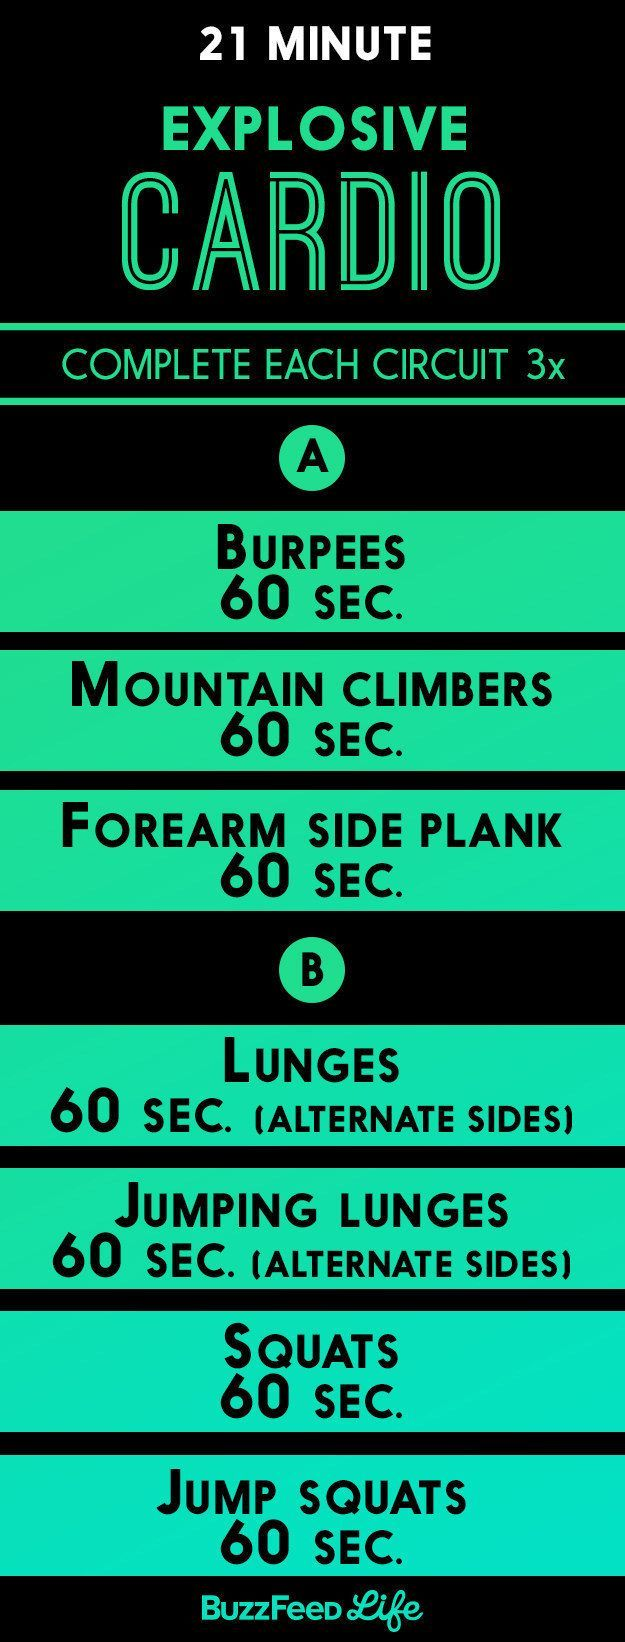 Best 25 cardio workouts ideas on pinterest quick daily workouts indoor workout and weekly - Best cardio equipment for small spaces property ...